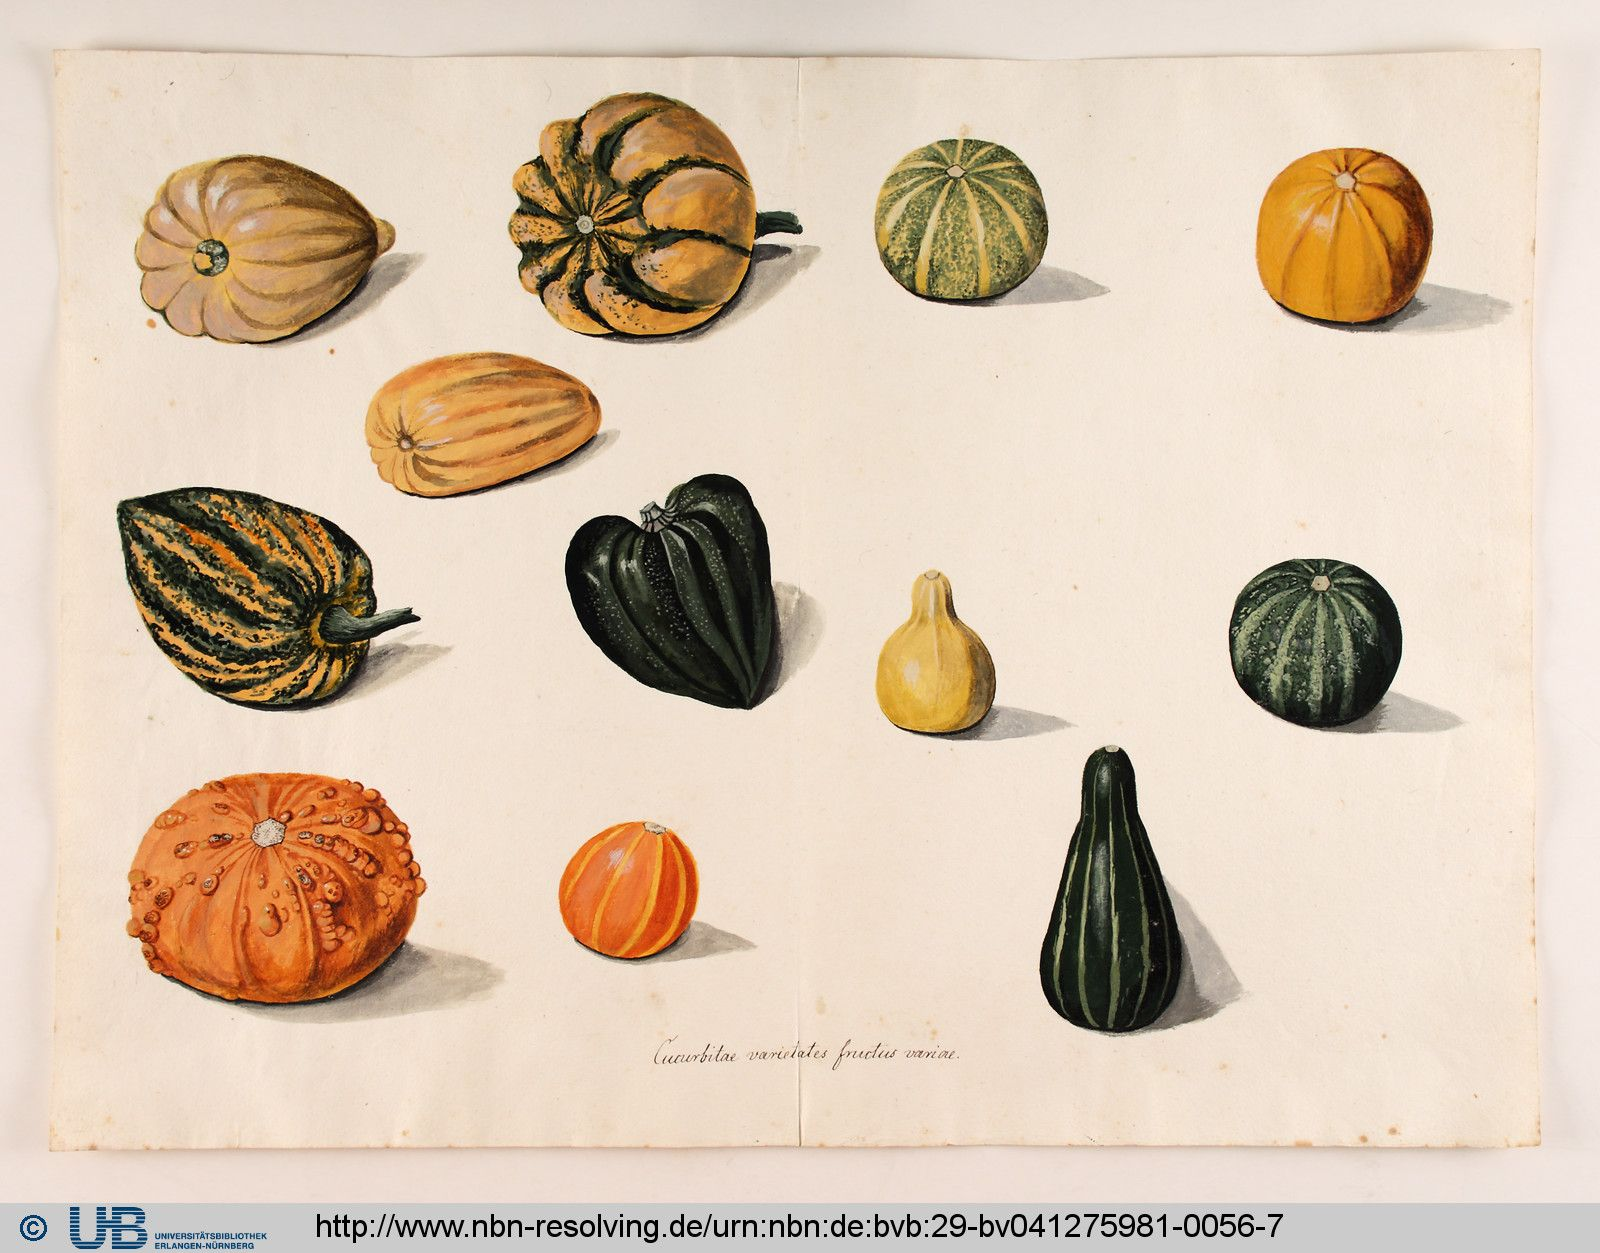 Holzwurm Nürnberg Georg Dionysius Ehret Cucurbita Colored Botanical Drawings